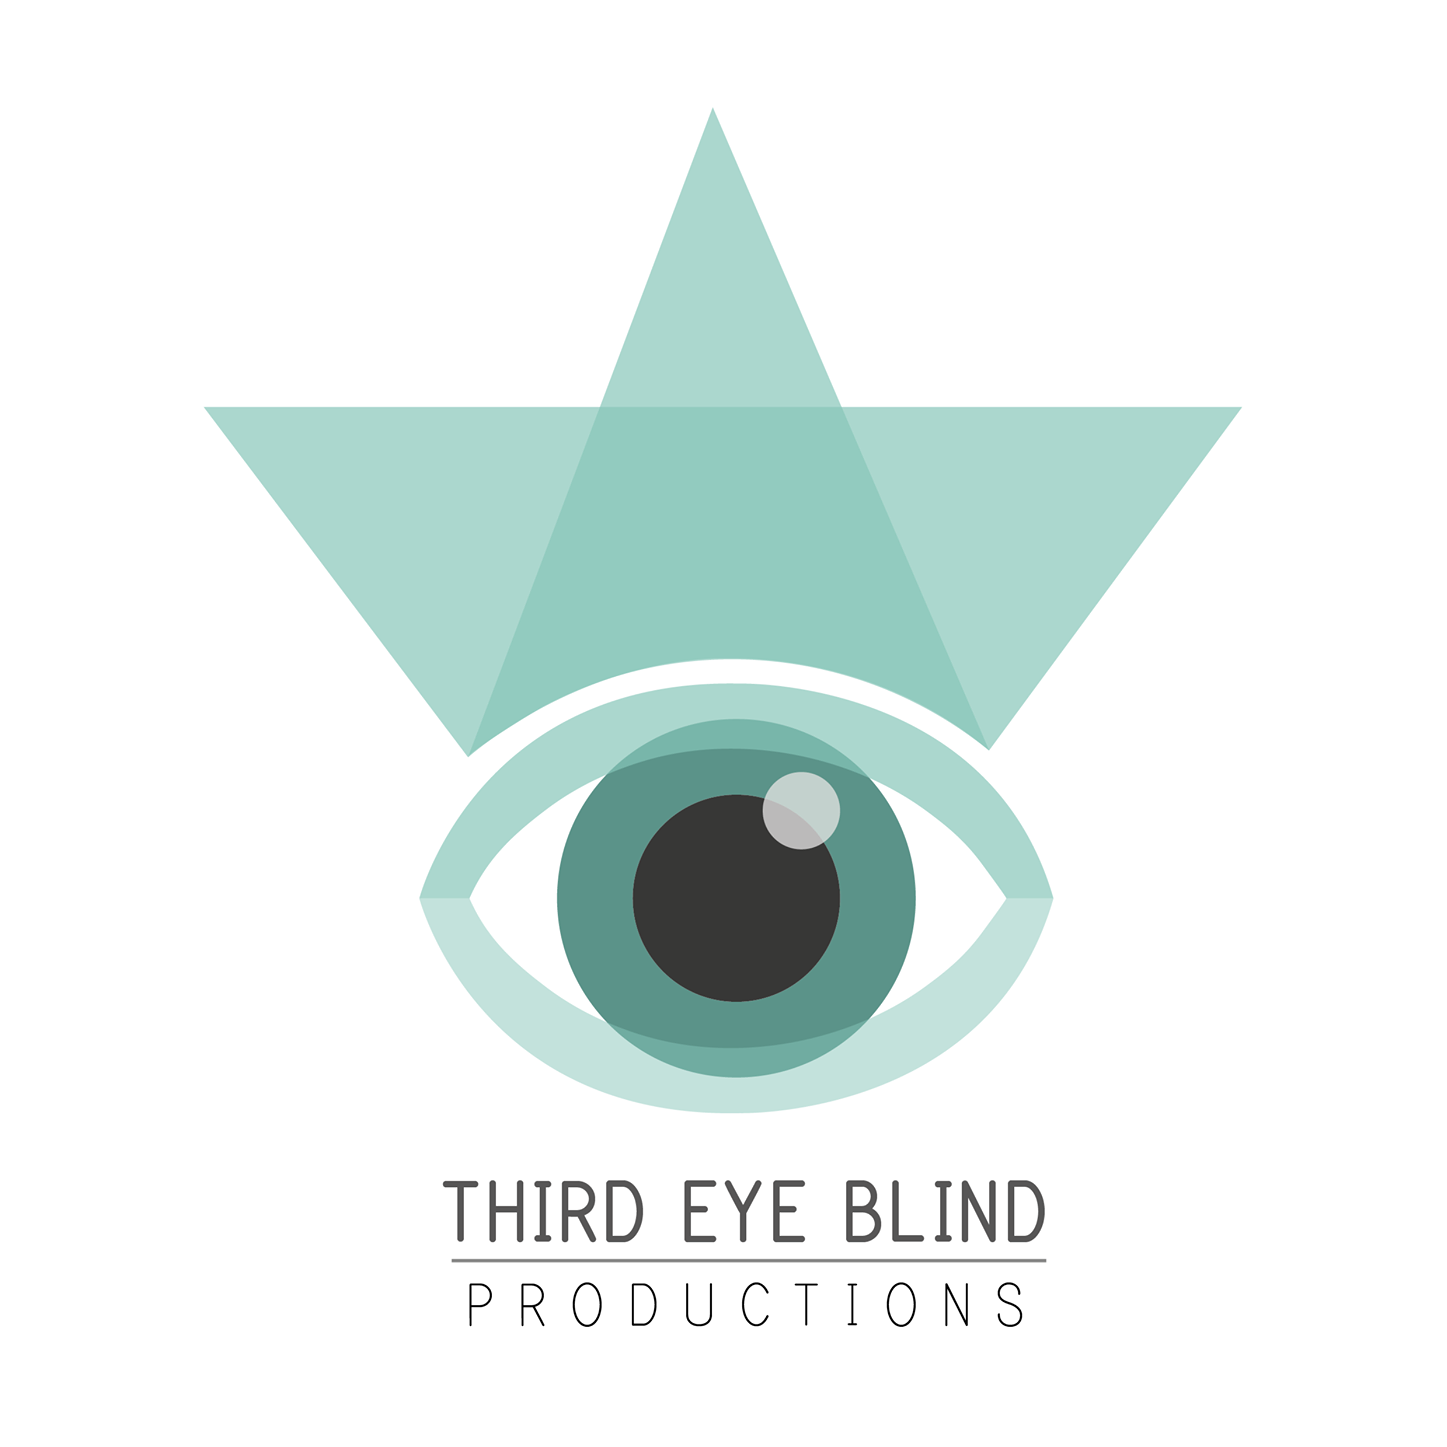 Third Eye Blind Productions